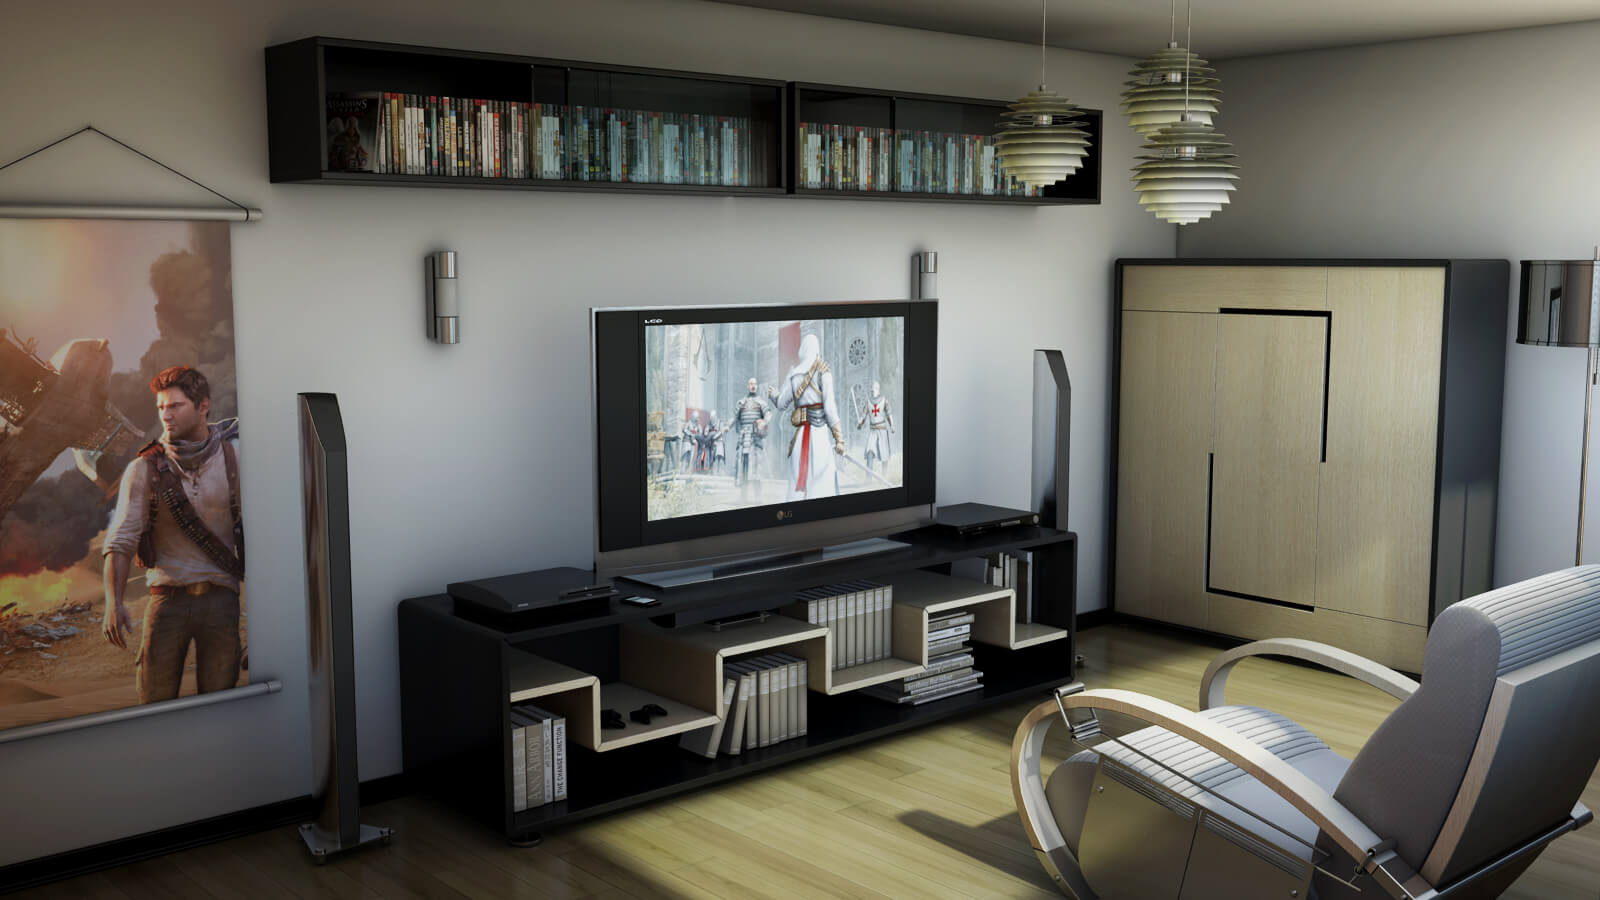 50 best setup of video game room ideas a gamer 39 s guide How to make a gaming setup in your room